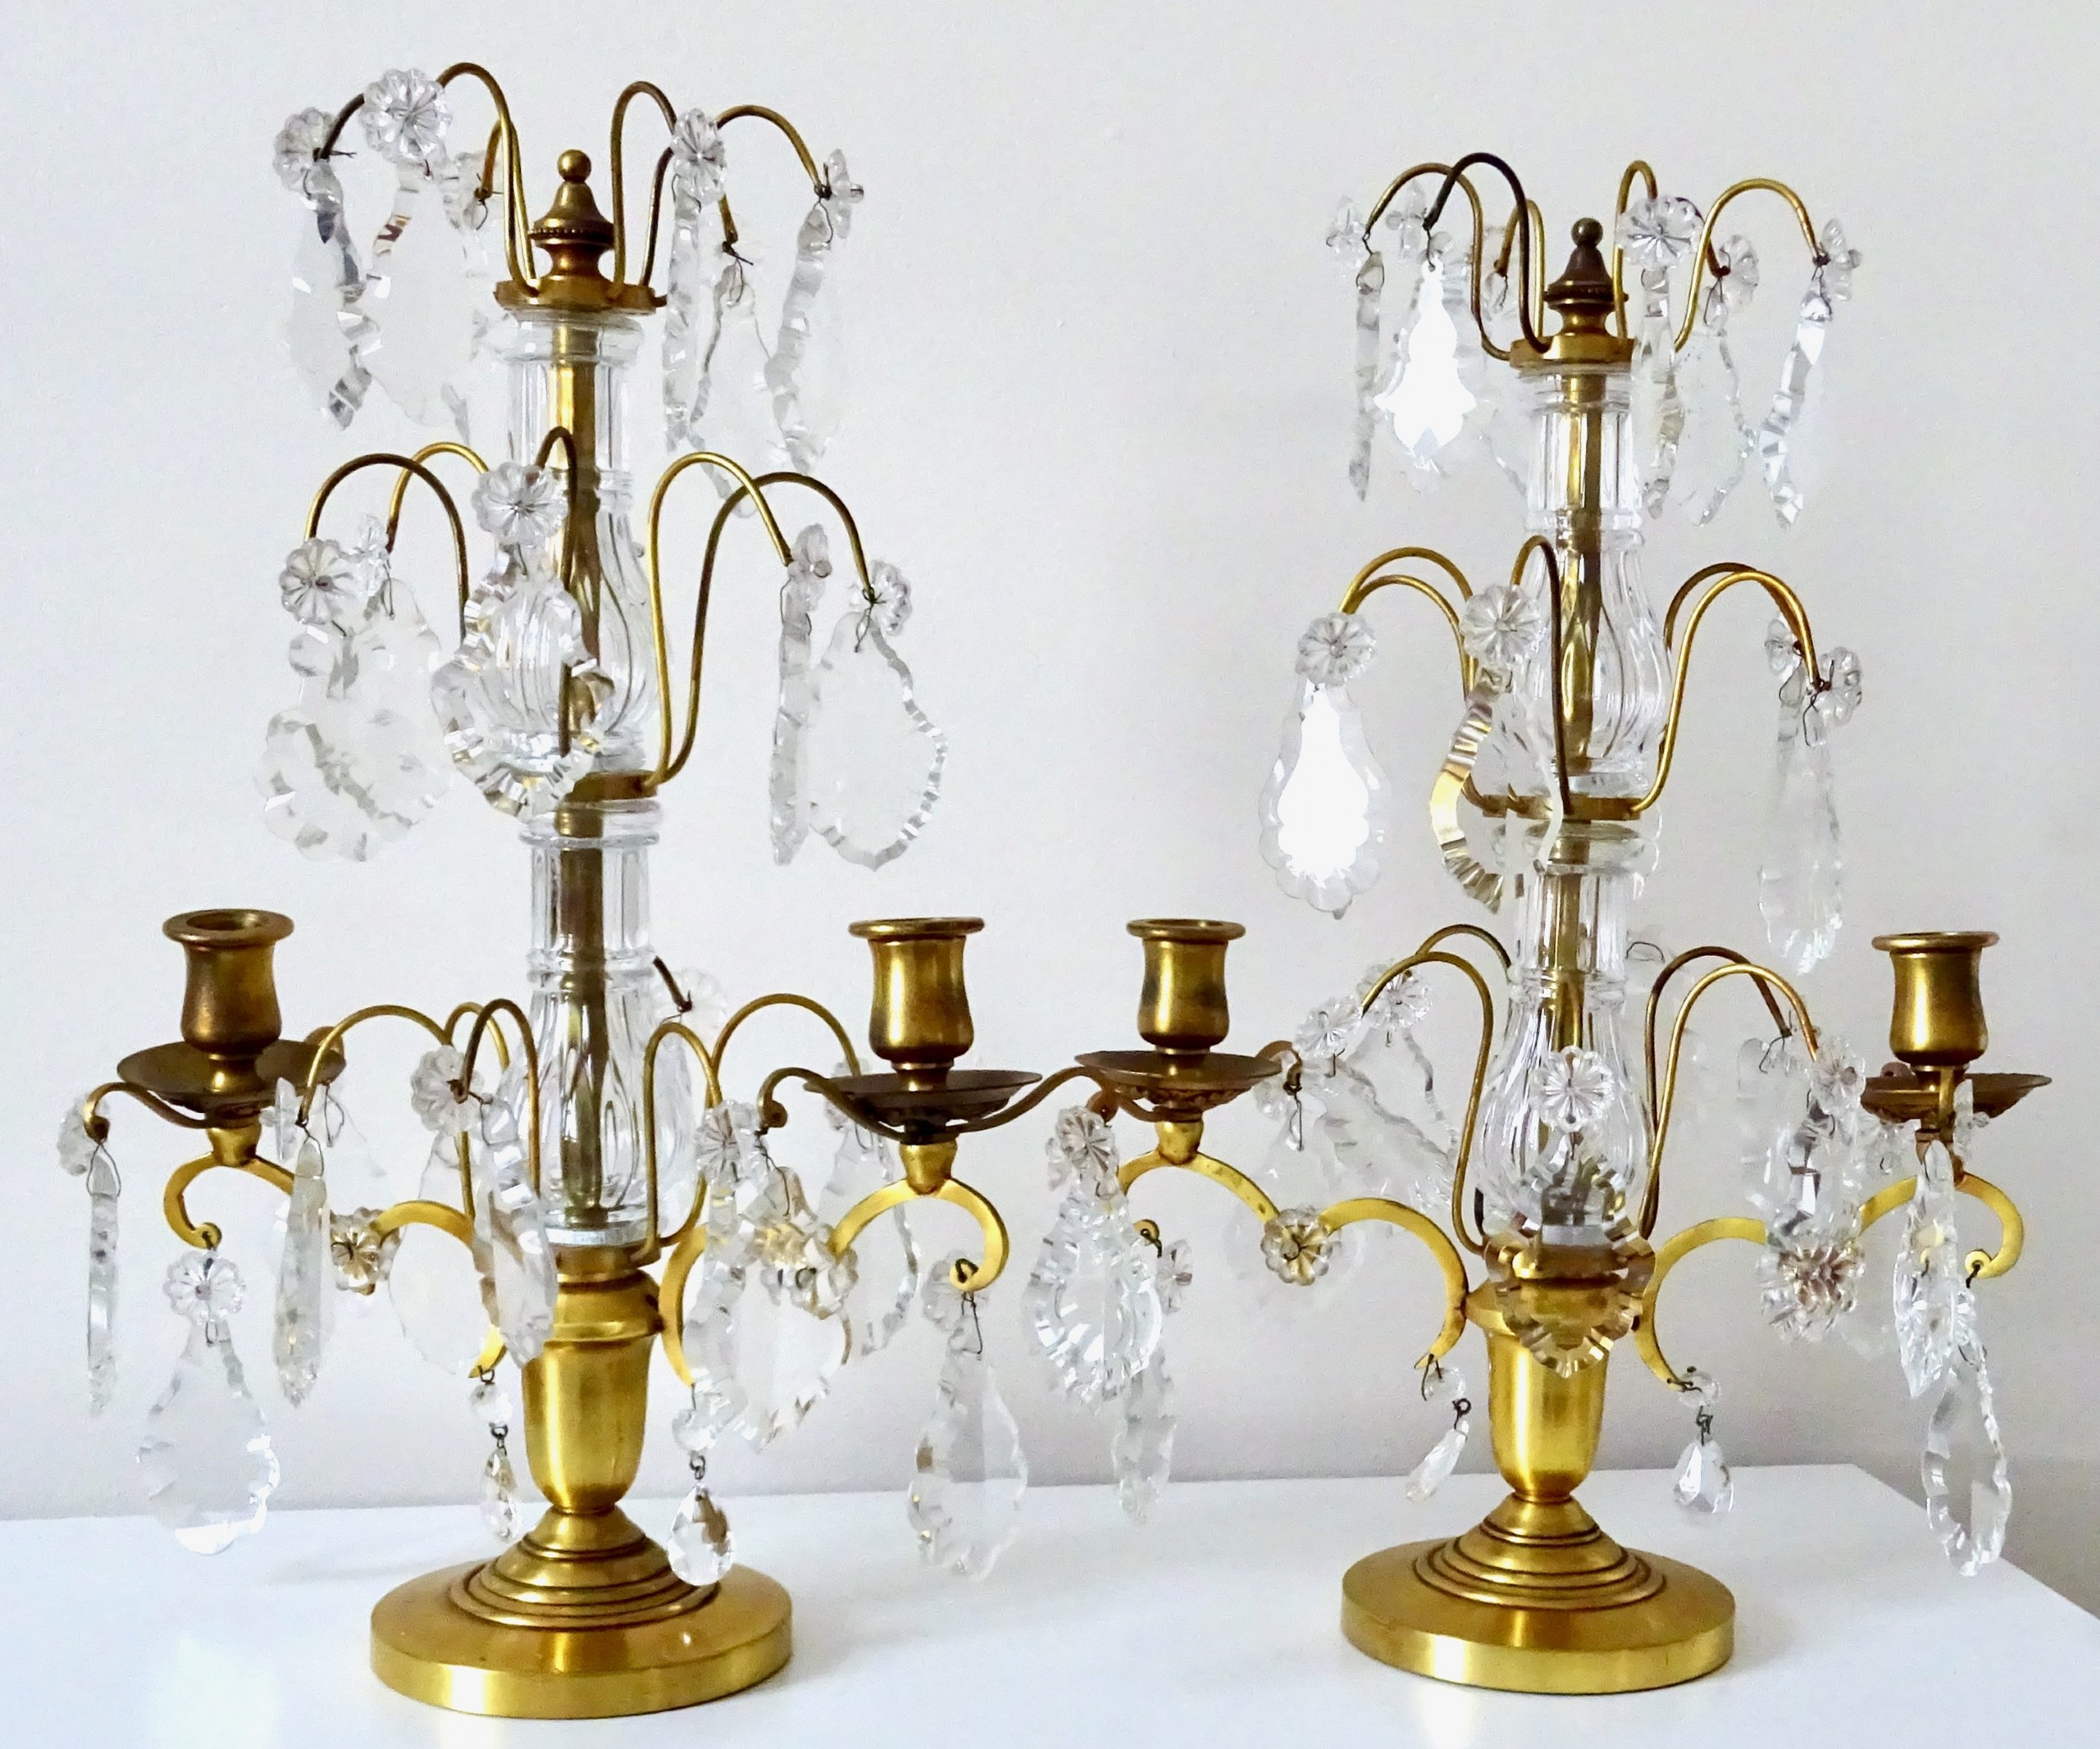 pair of candlesticks with glass drops